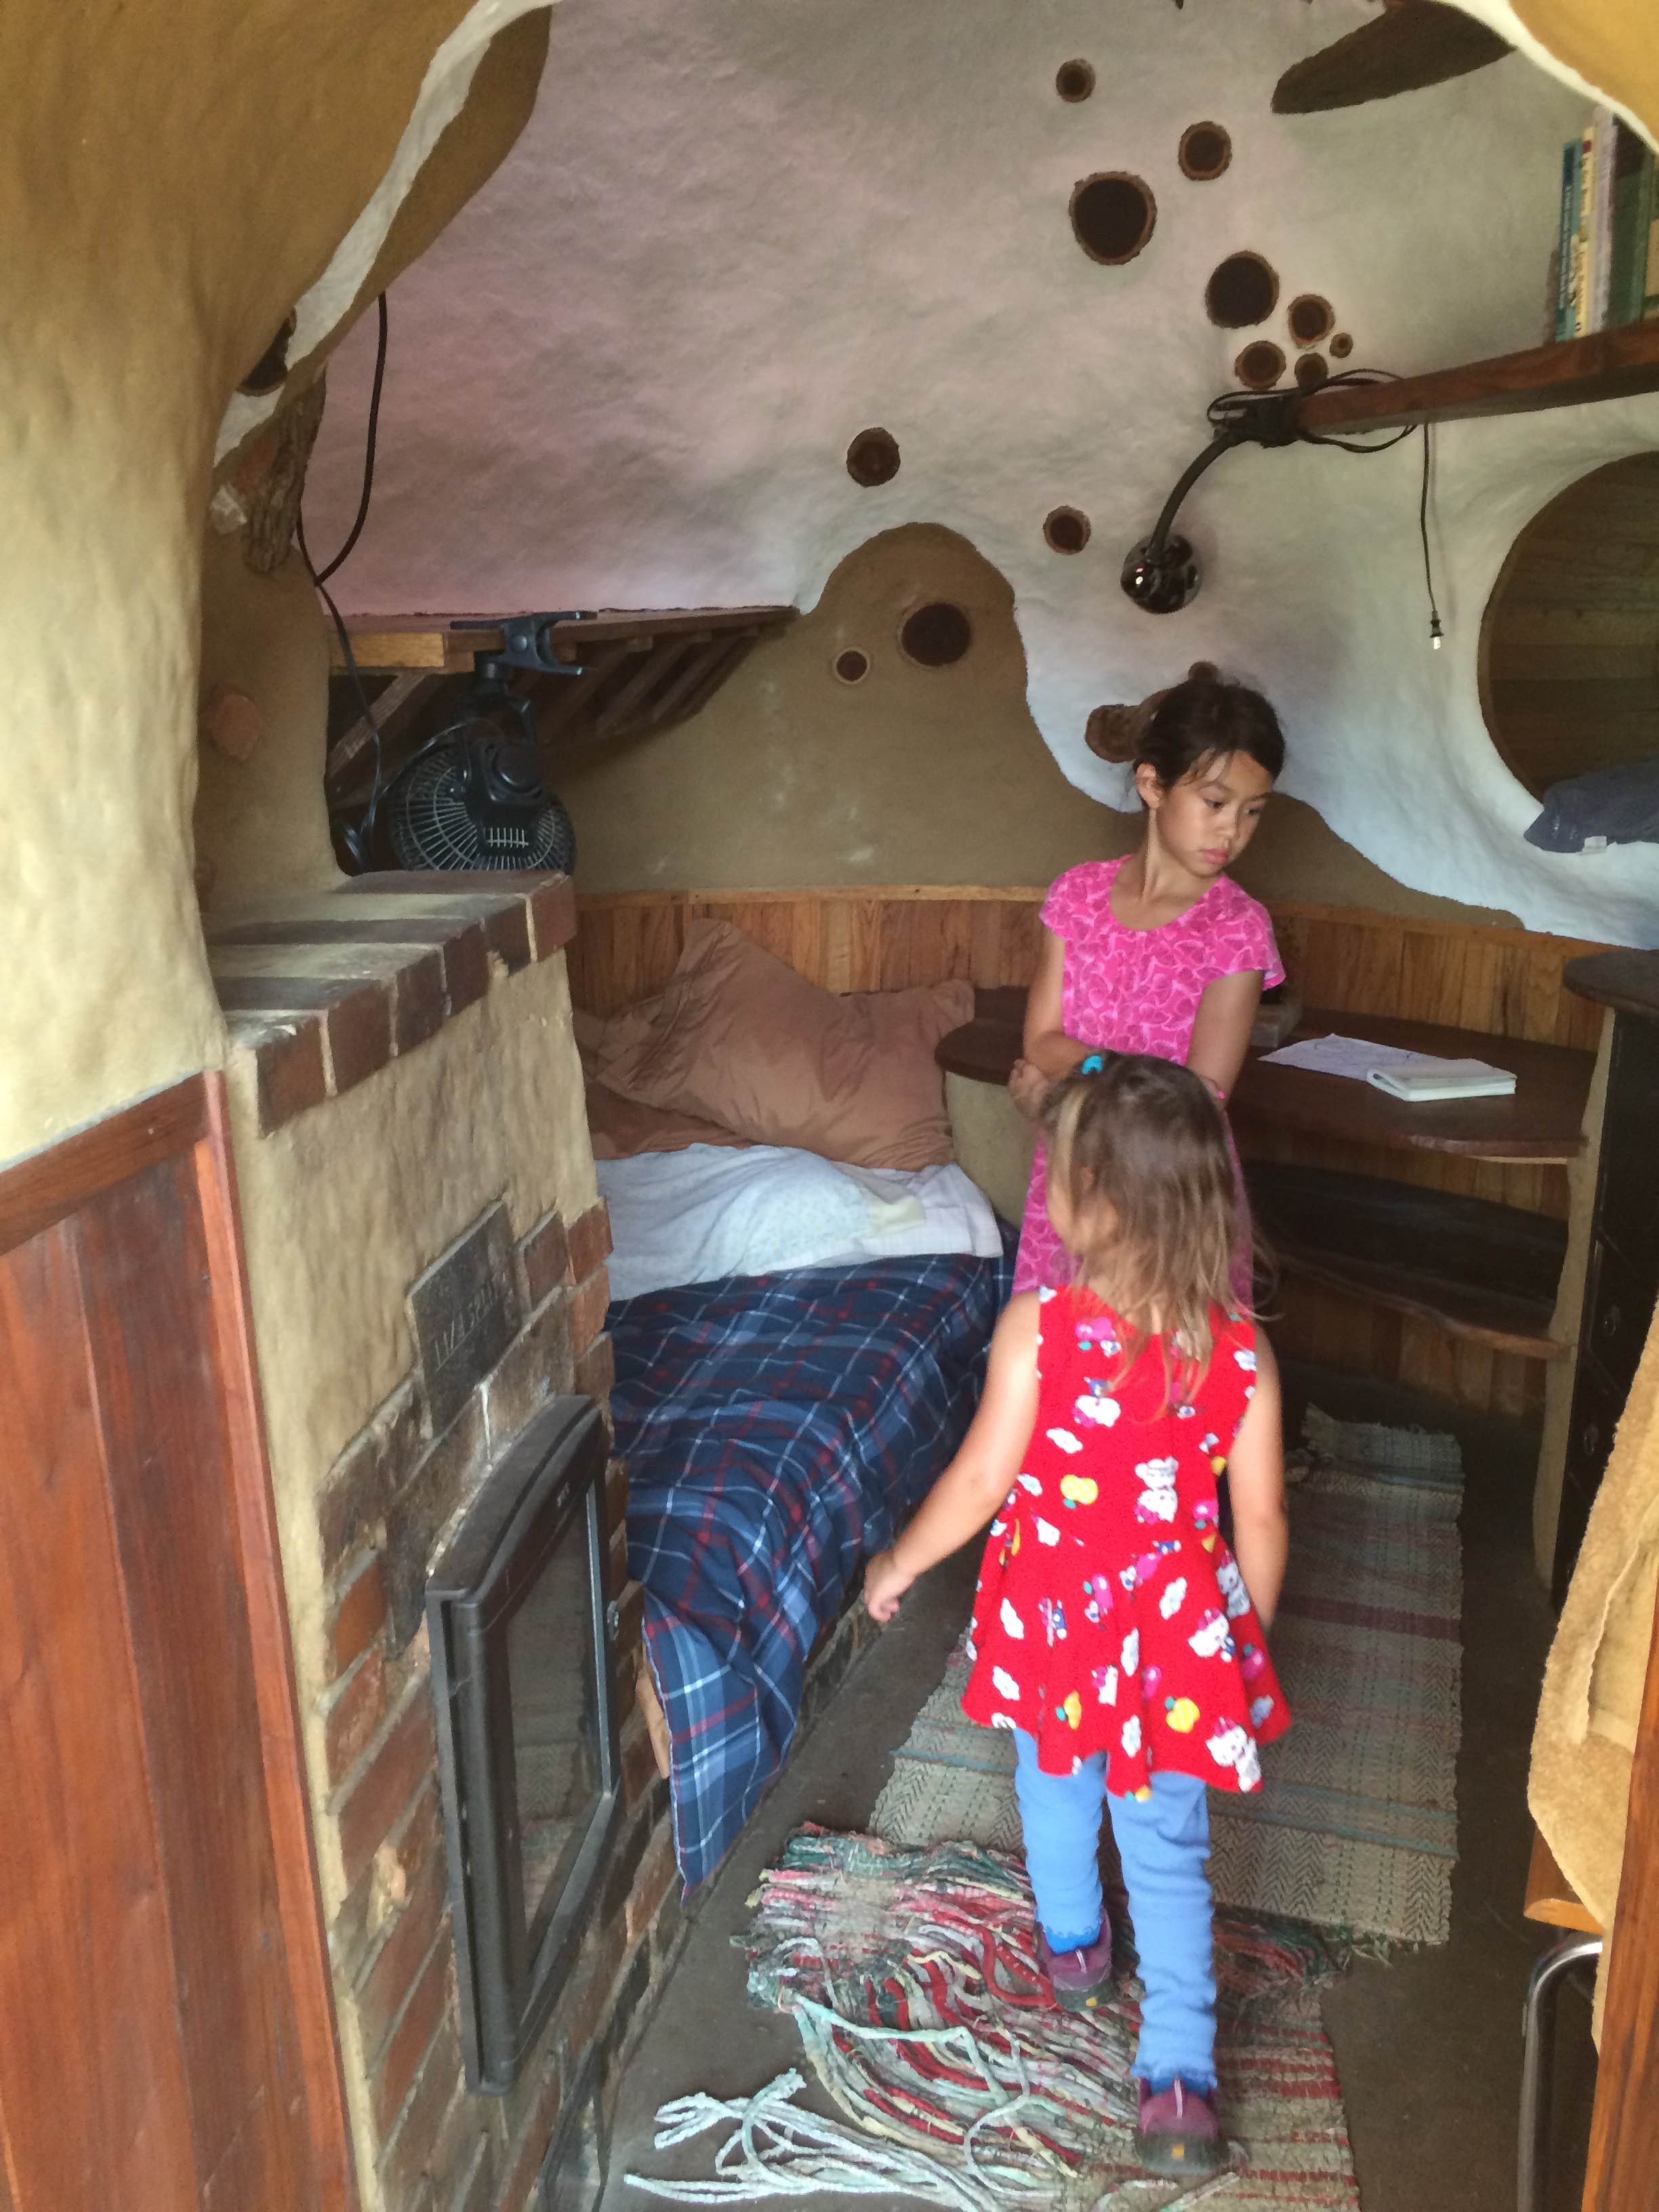 DR kids show off an accessory dwelling unit bedroom that is rented out to visitors. (Source: Kea Wilson)